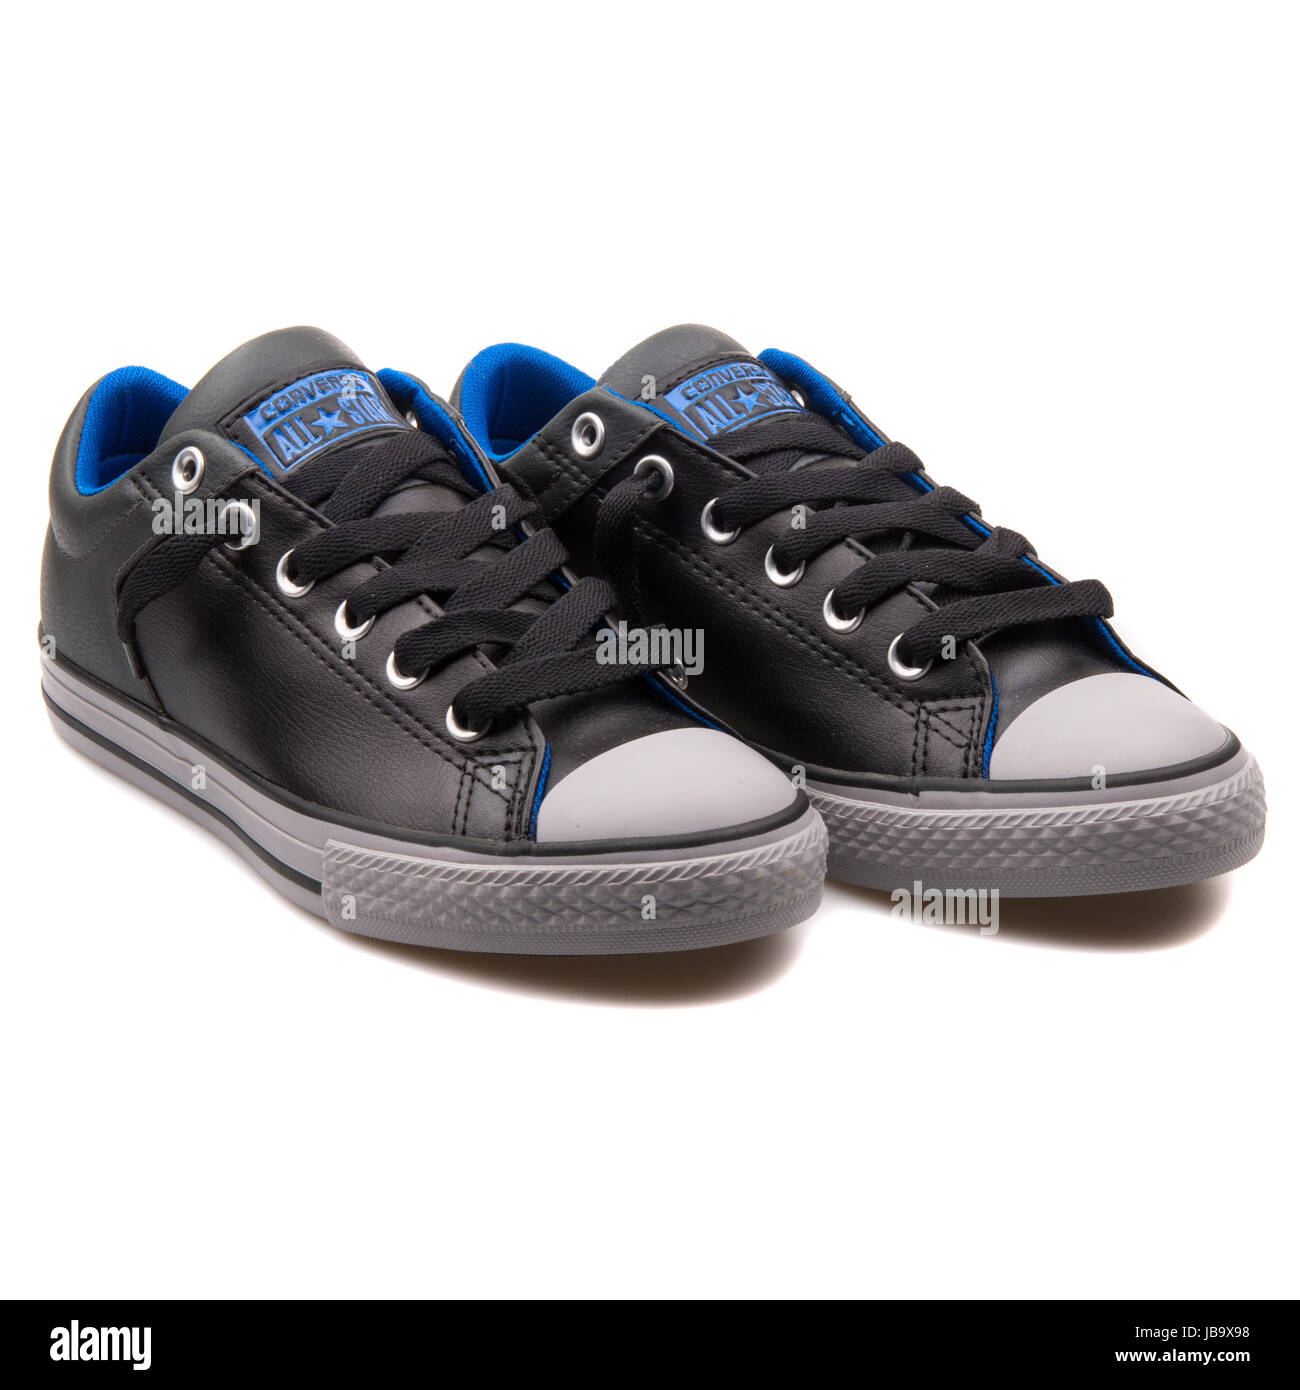 e14f74cfd5d Converse Chuck Taylor All Star High Street Black Storm Junior s Shoes -  650002C - Stock Image